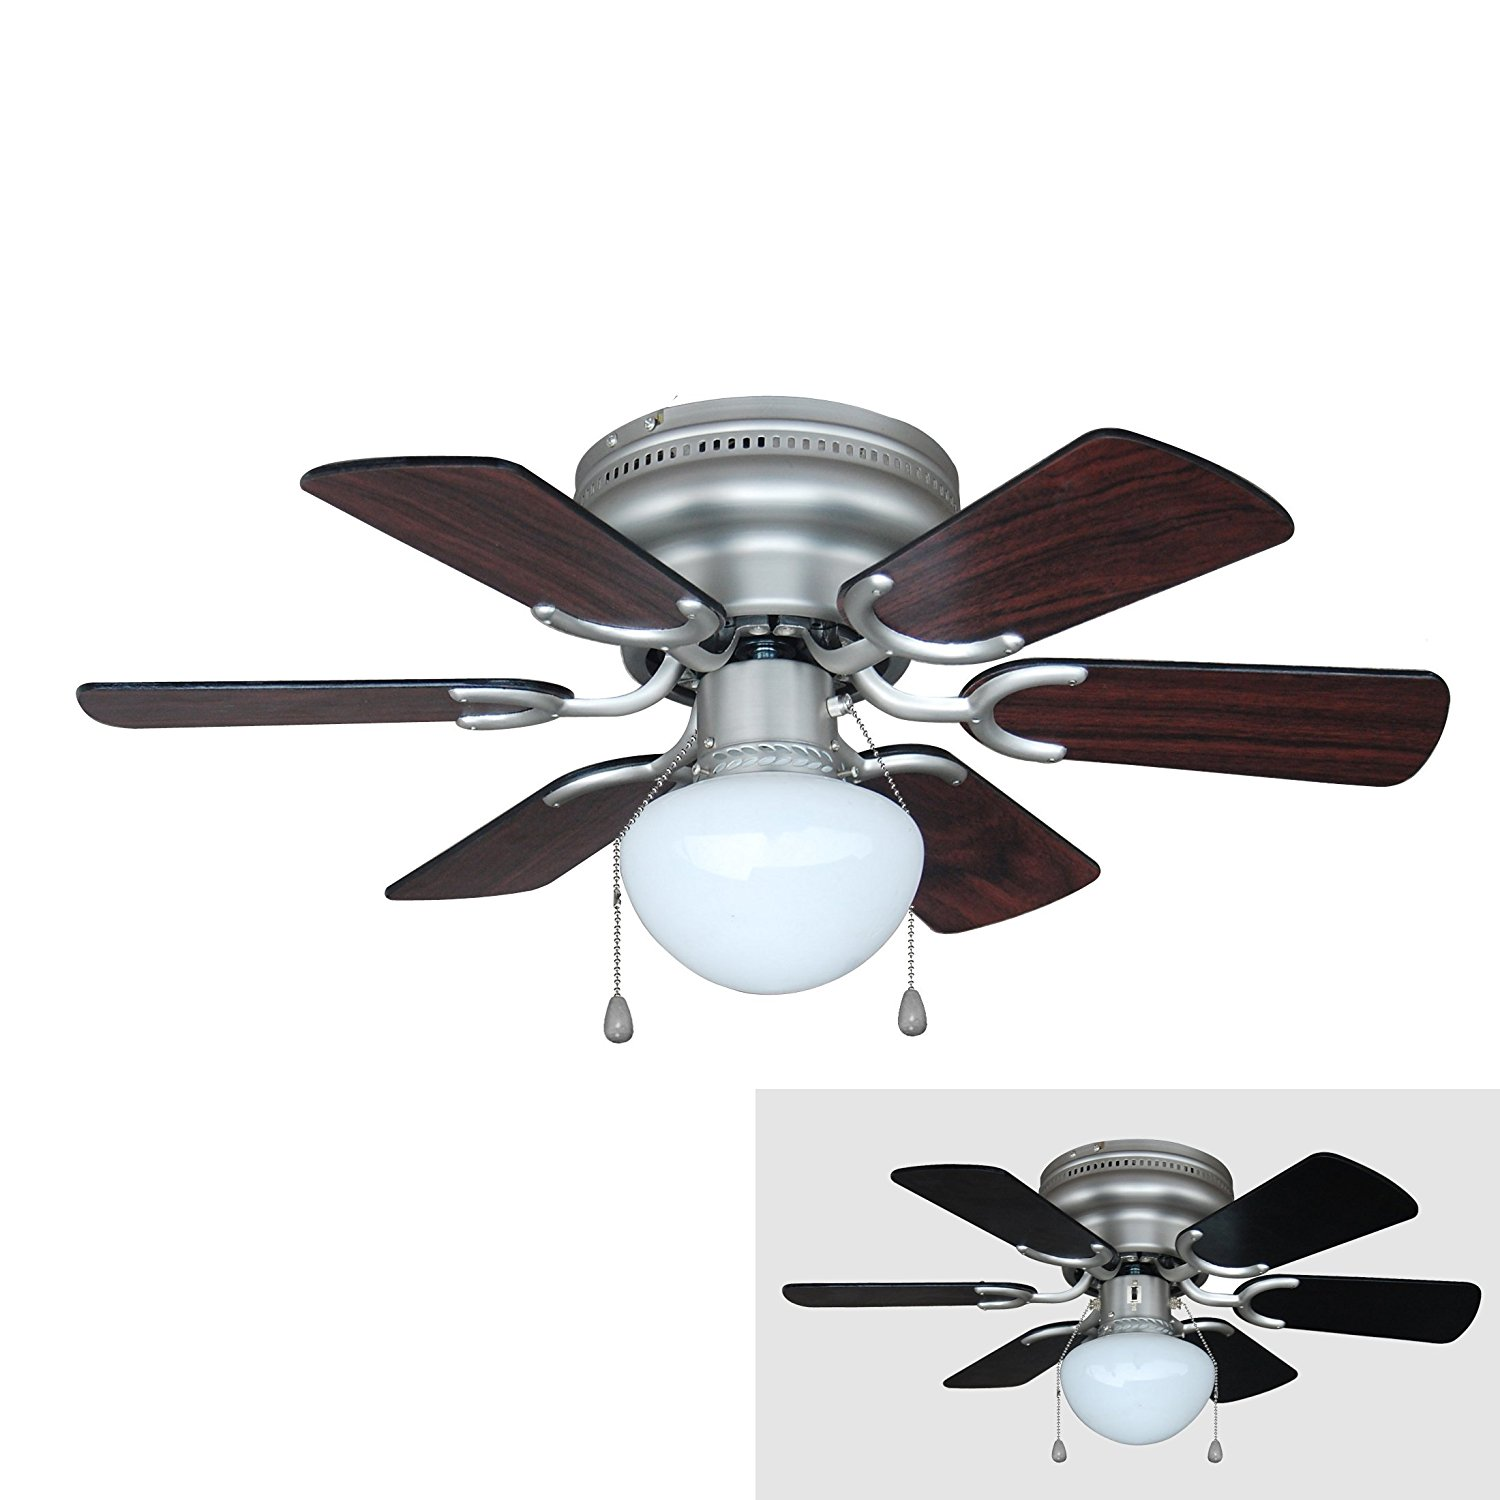 Black Ceiling Fan With Light Elegance Look With Great Performance Decor On The Line